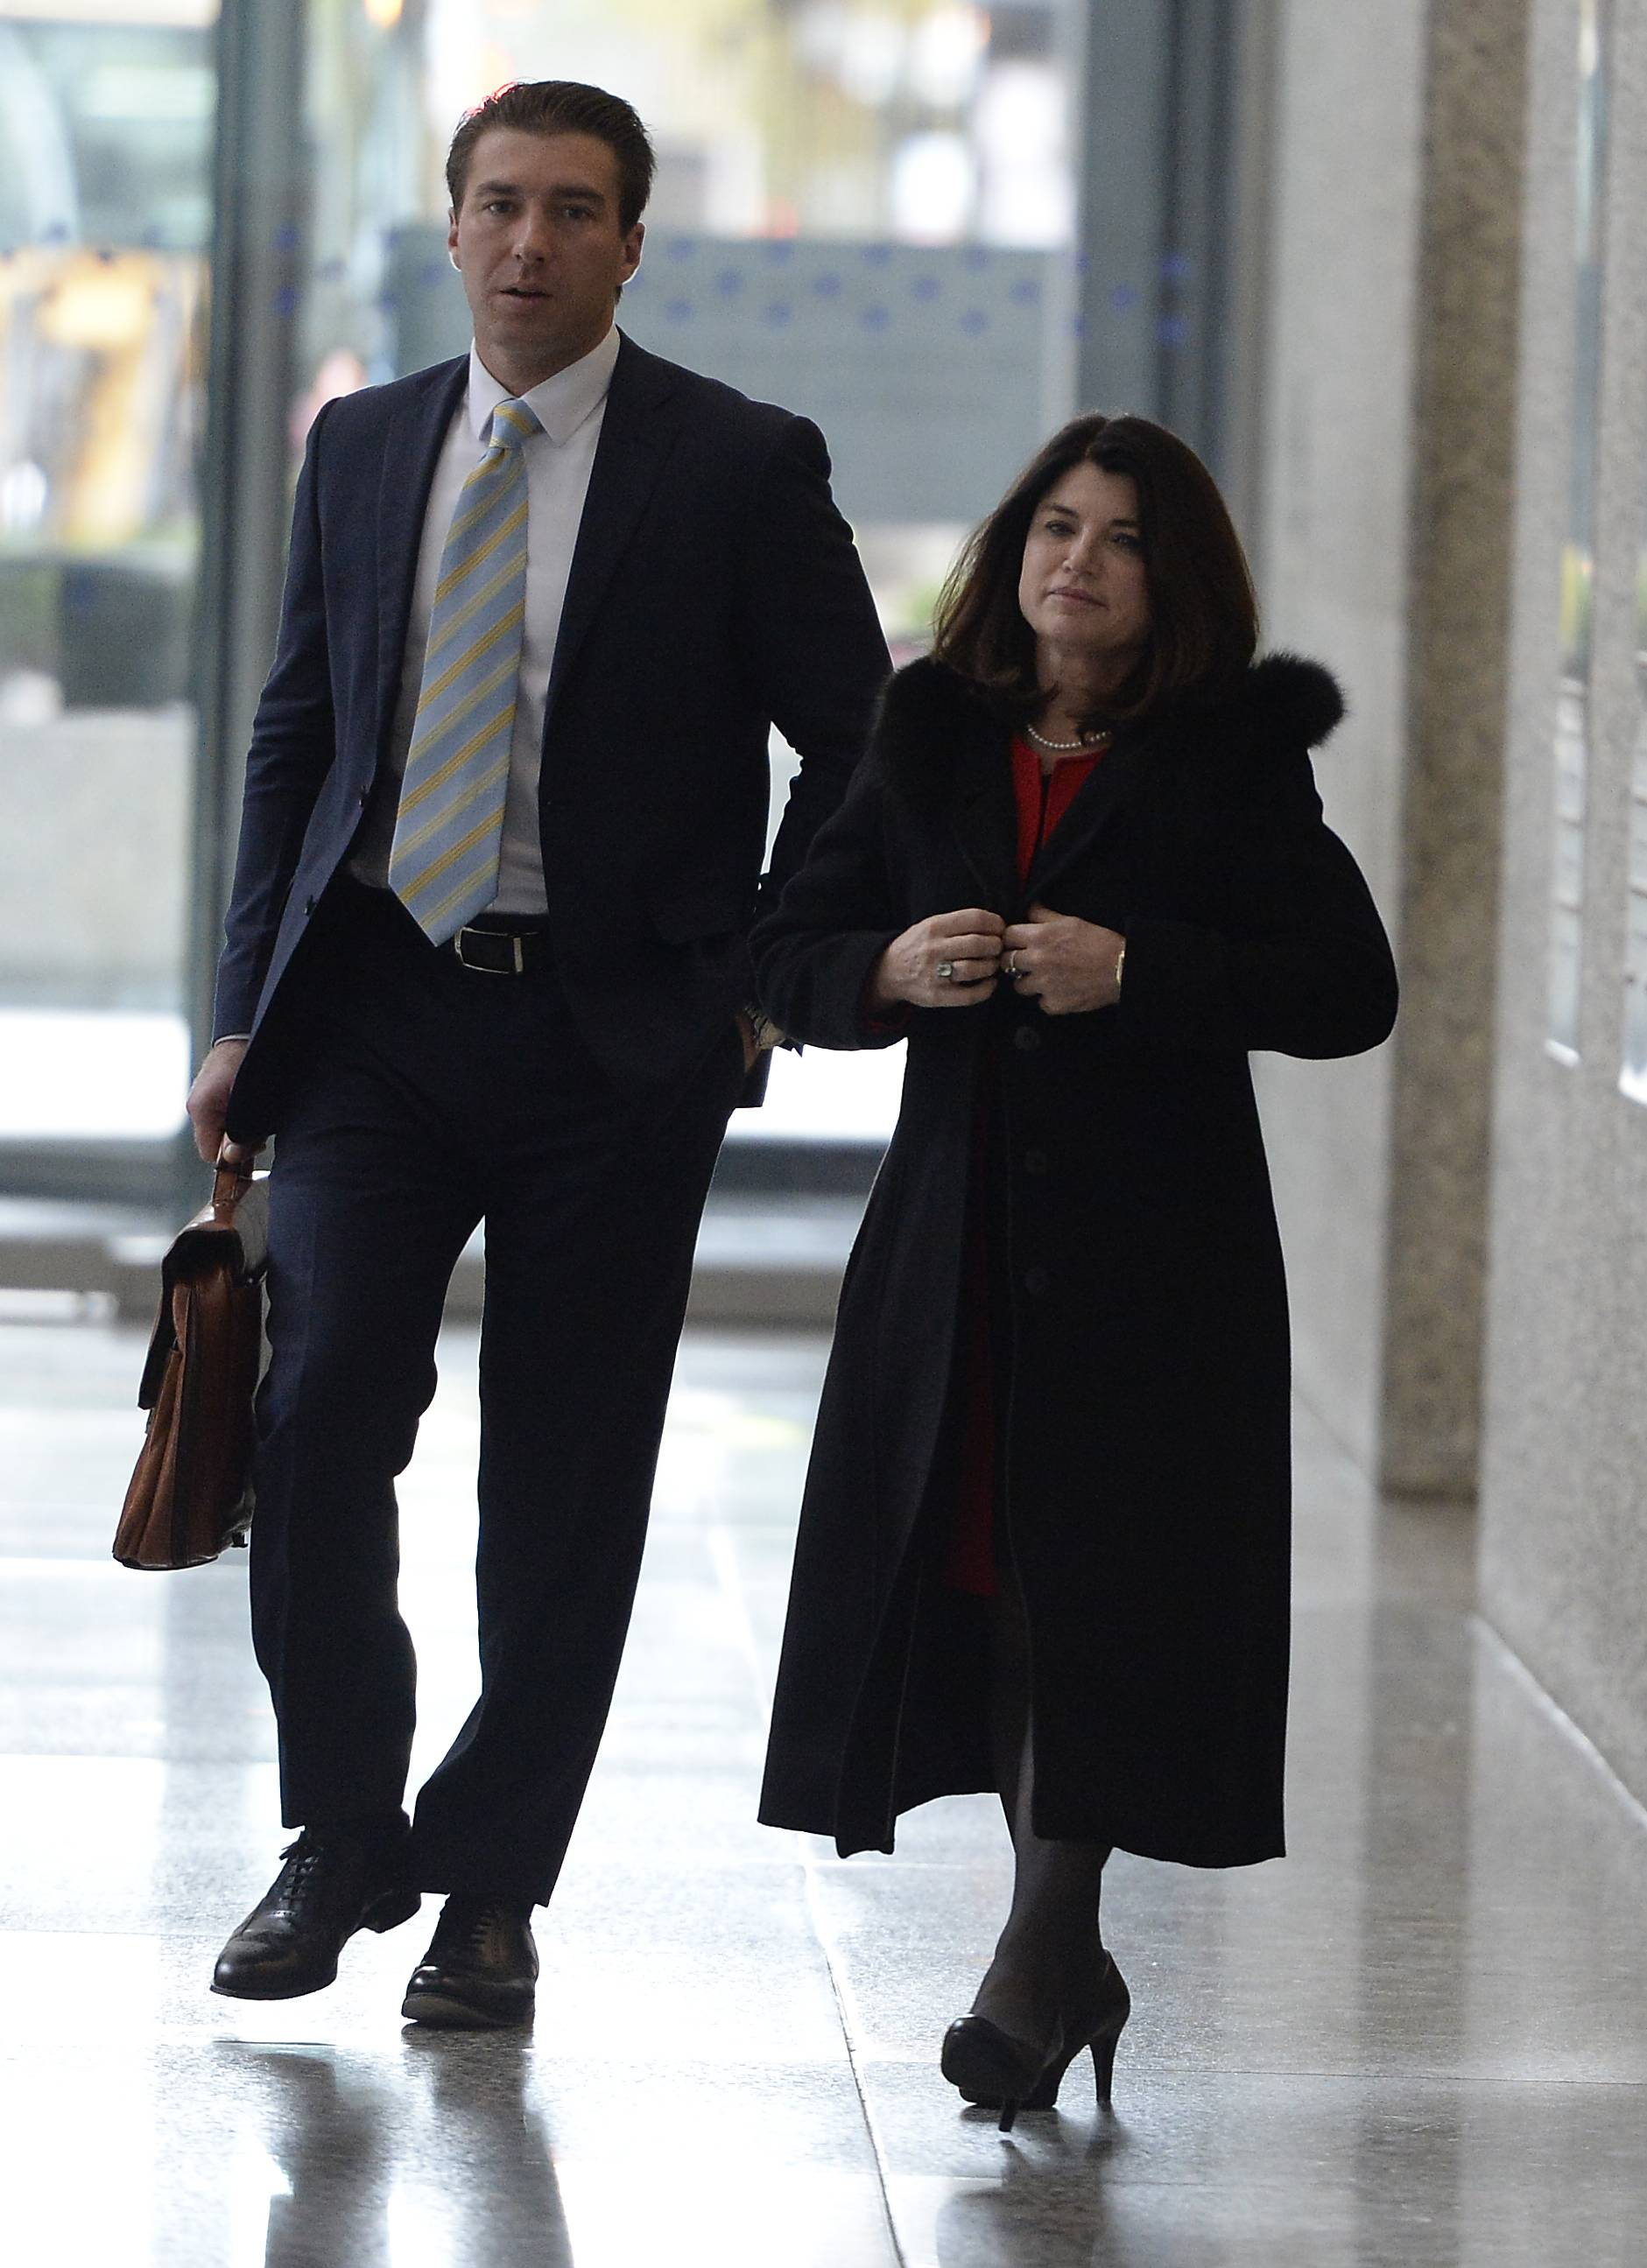 Former College of DuPage board Chairwoman Kathy Hamilton leaves federal court Tuesday after an appellate court hearing on whether former COD President Robert Breuder's contract was valid at the time of his October 2015 firing.